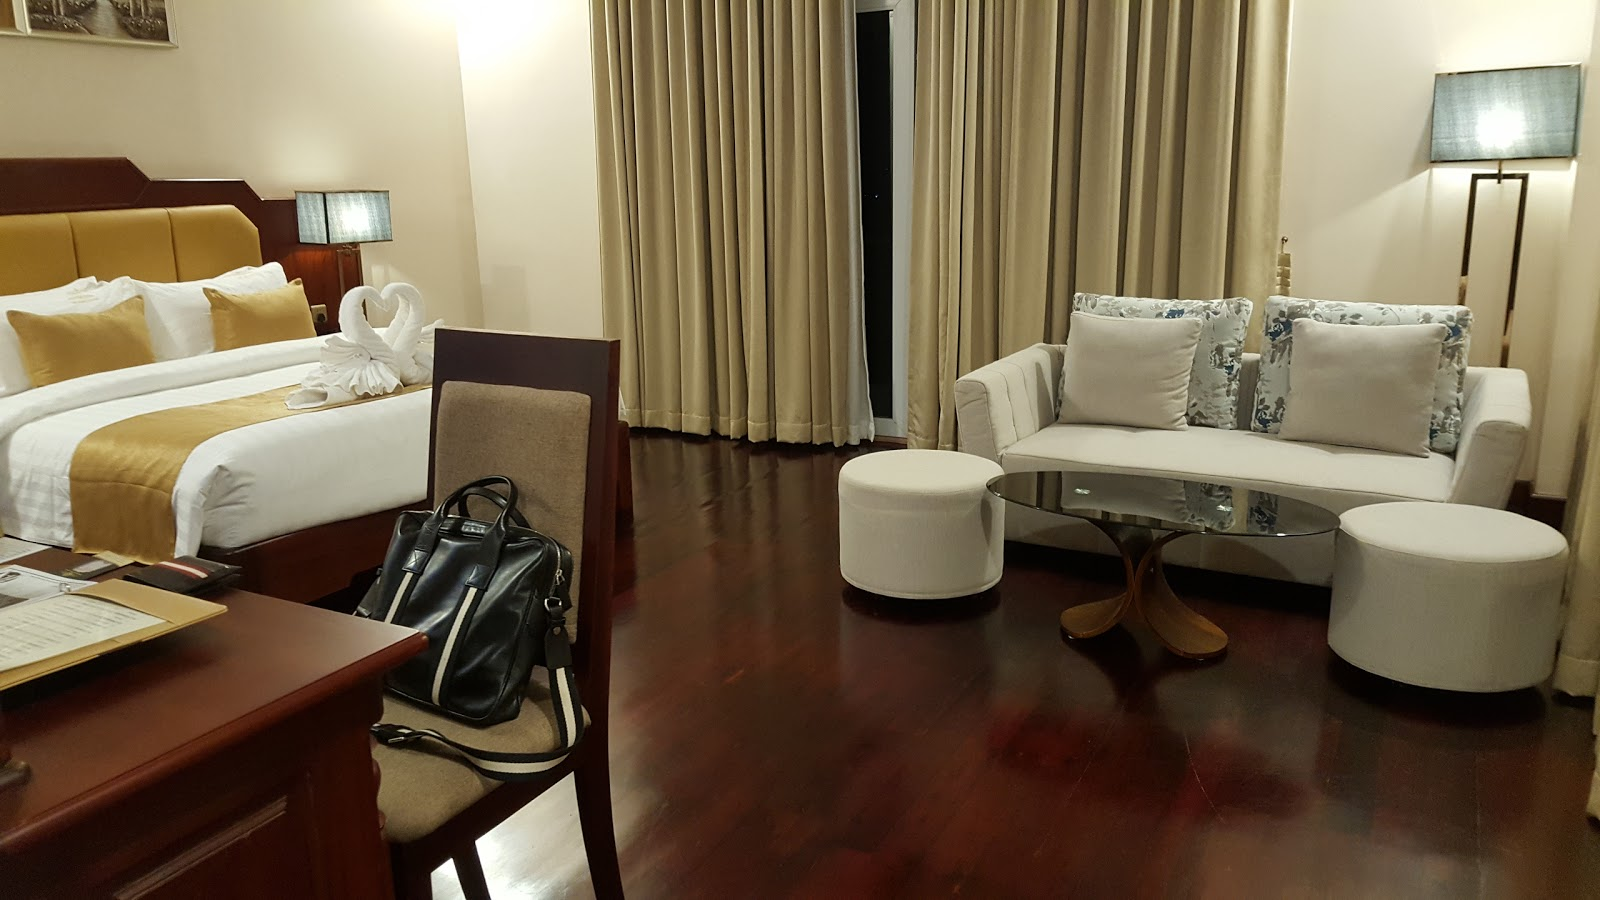 lbn asian hotel - around guides